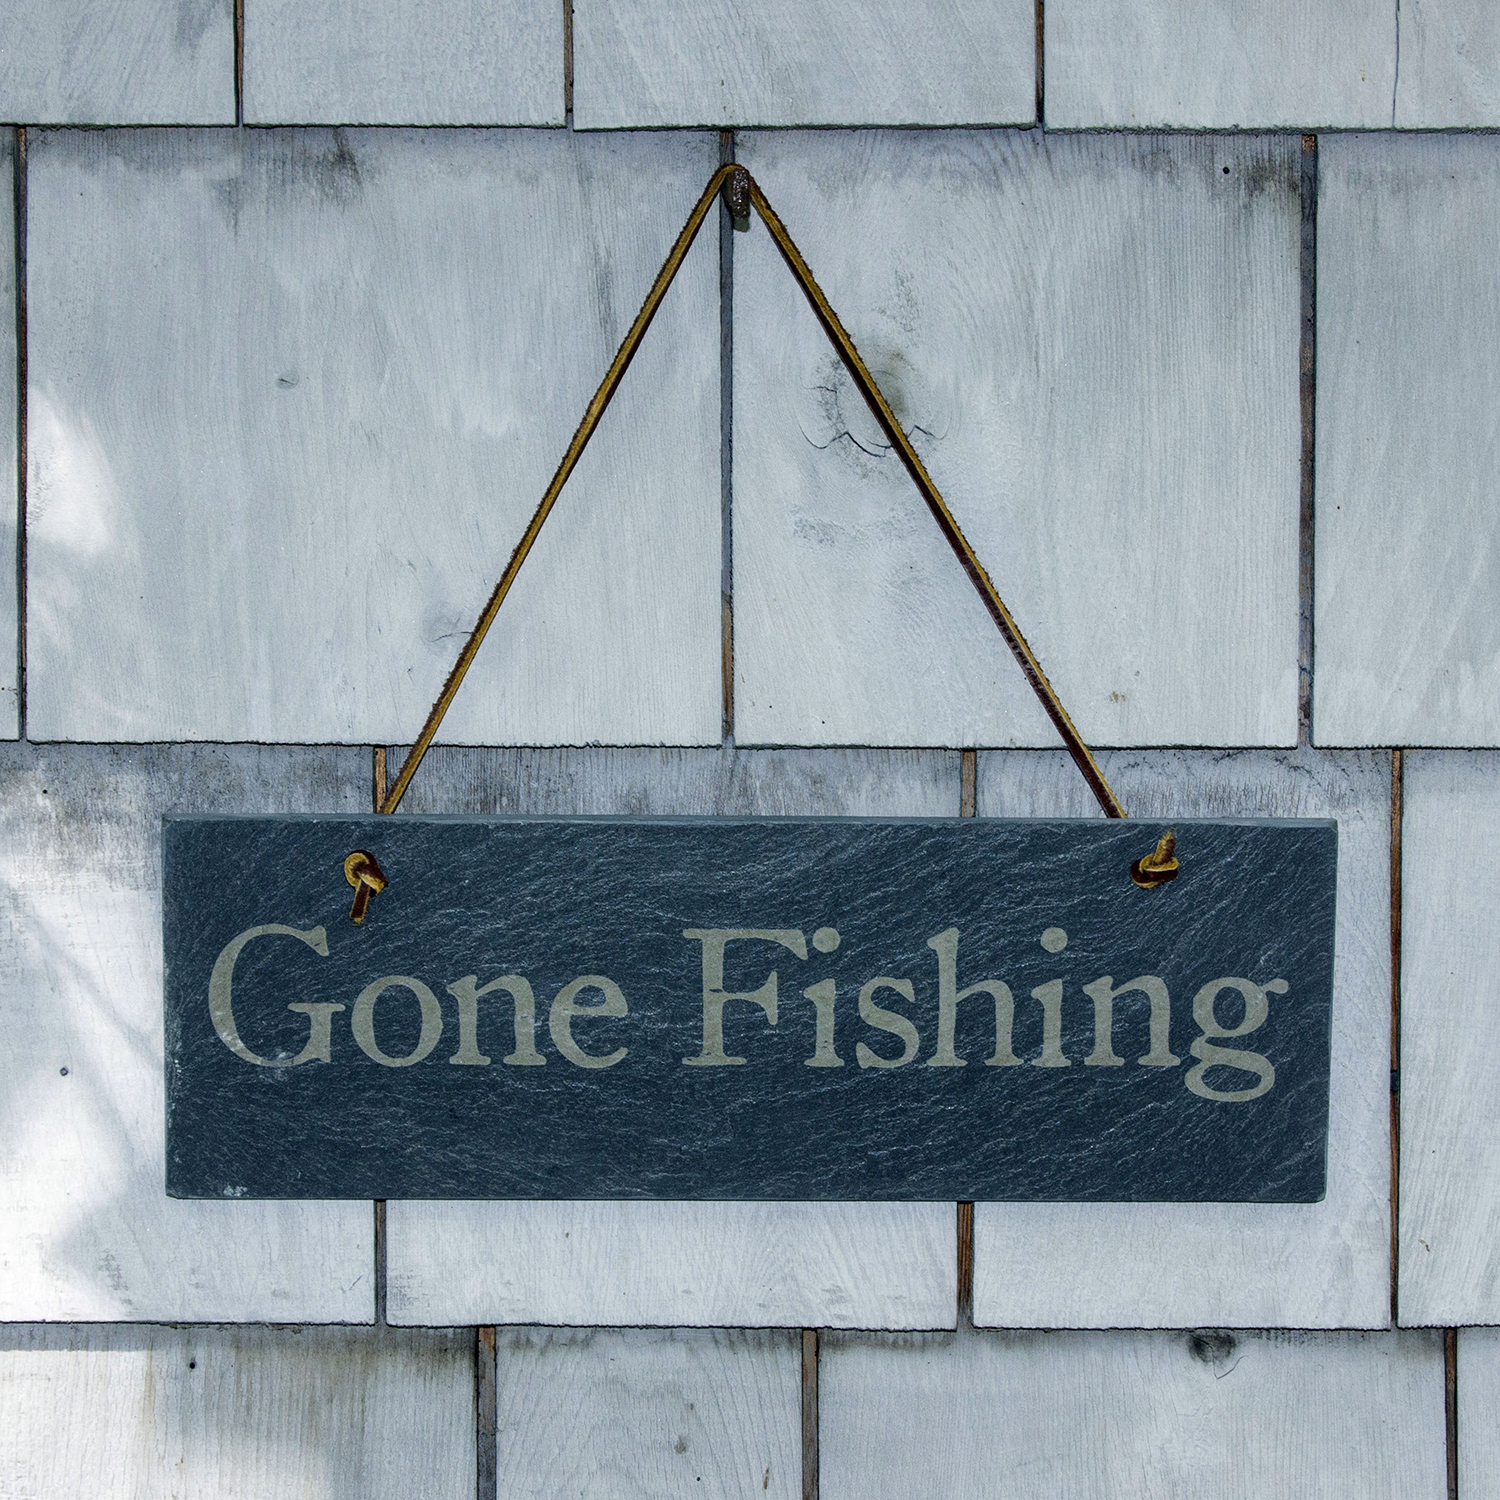 Gone Fishing Slate sign by Riverslate Co.